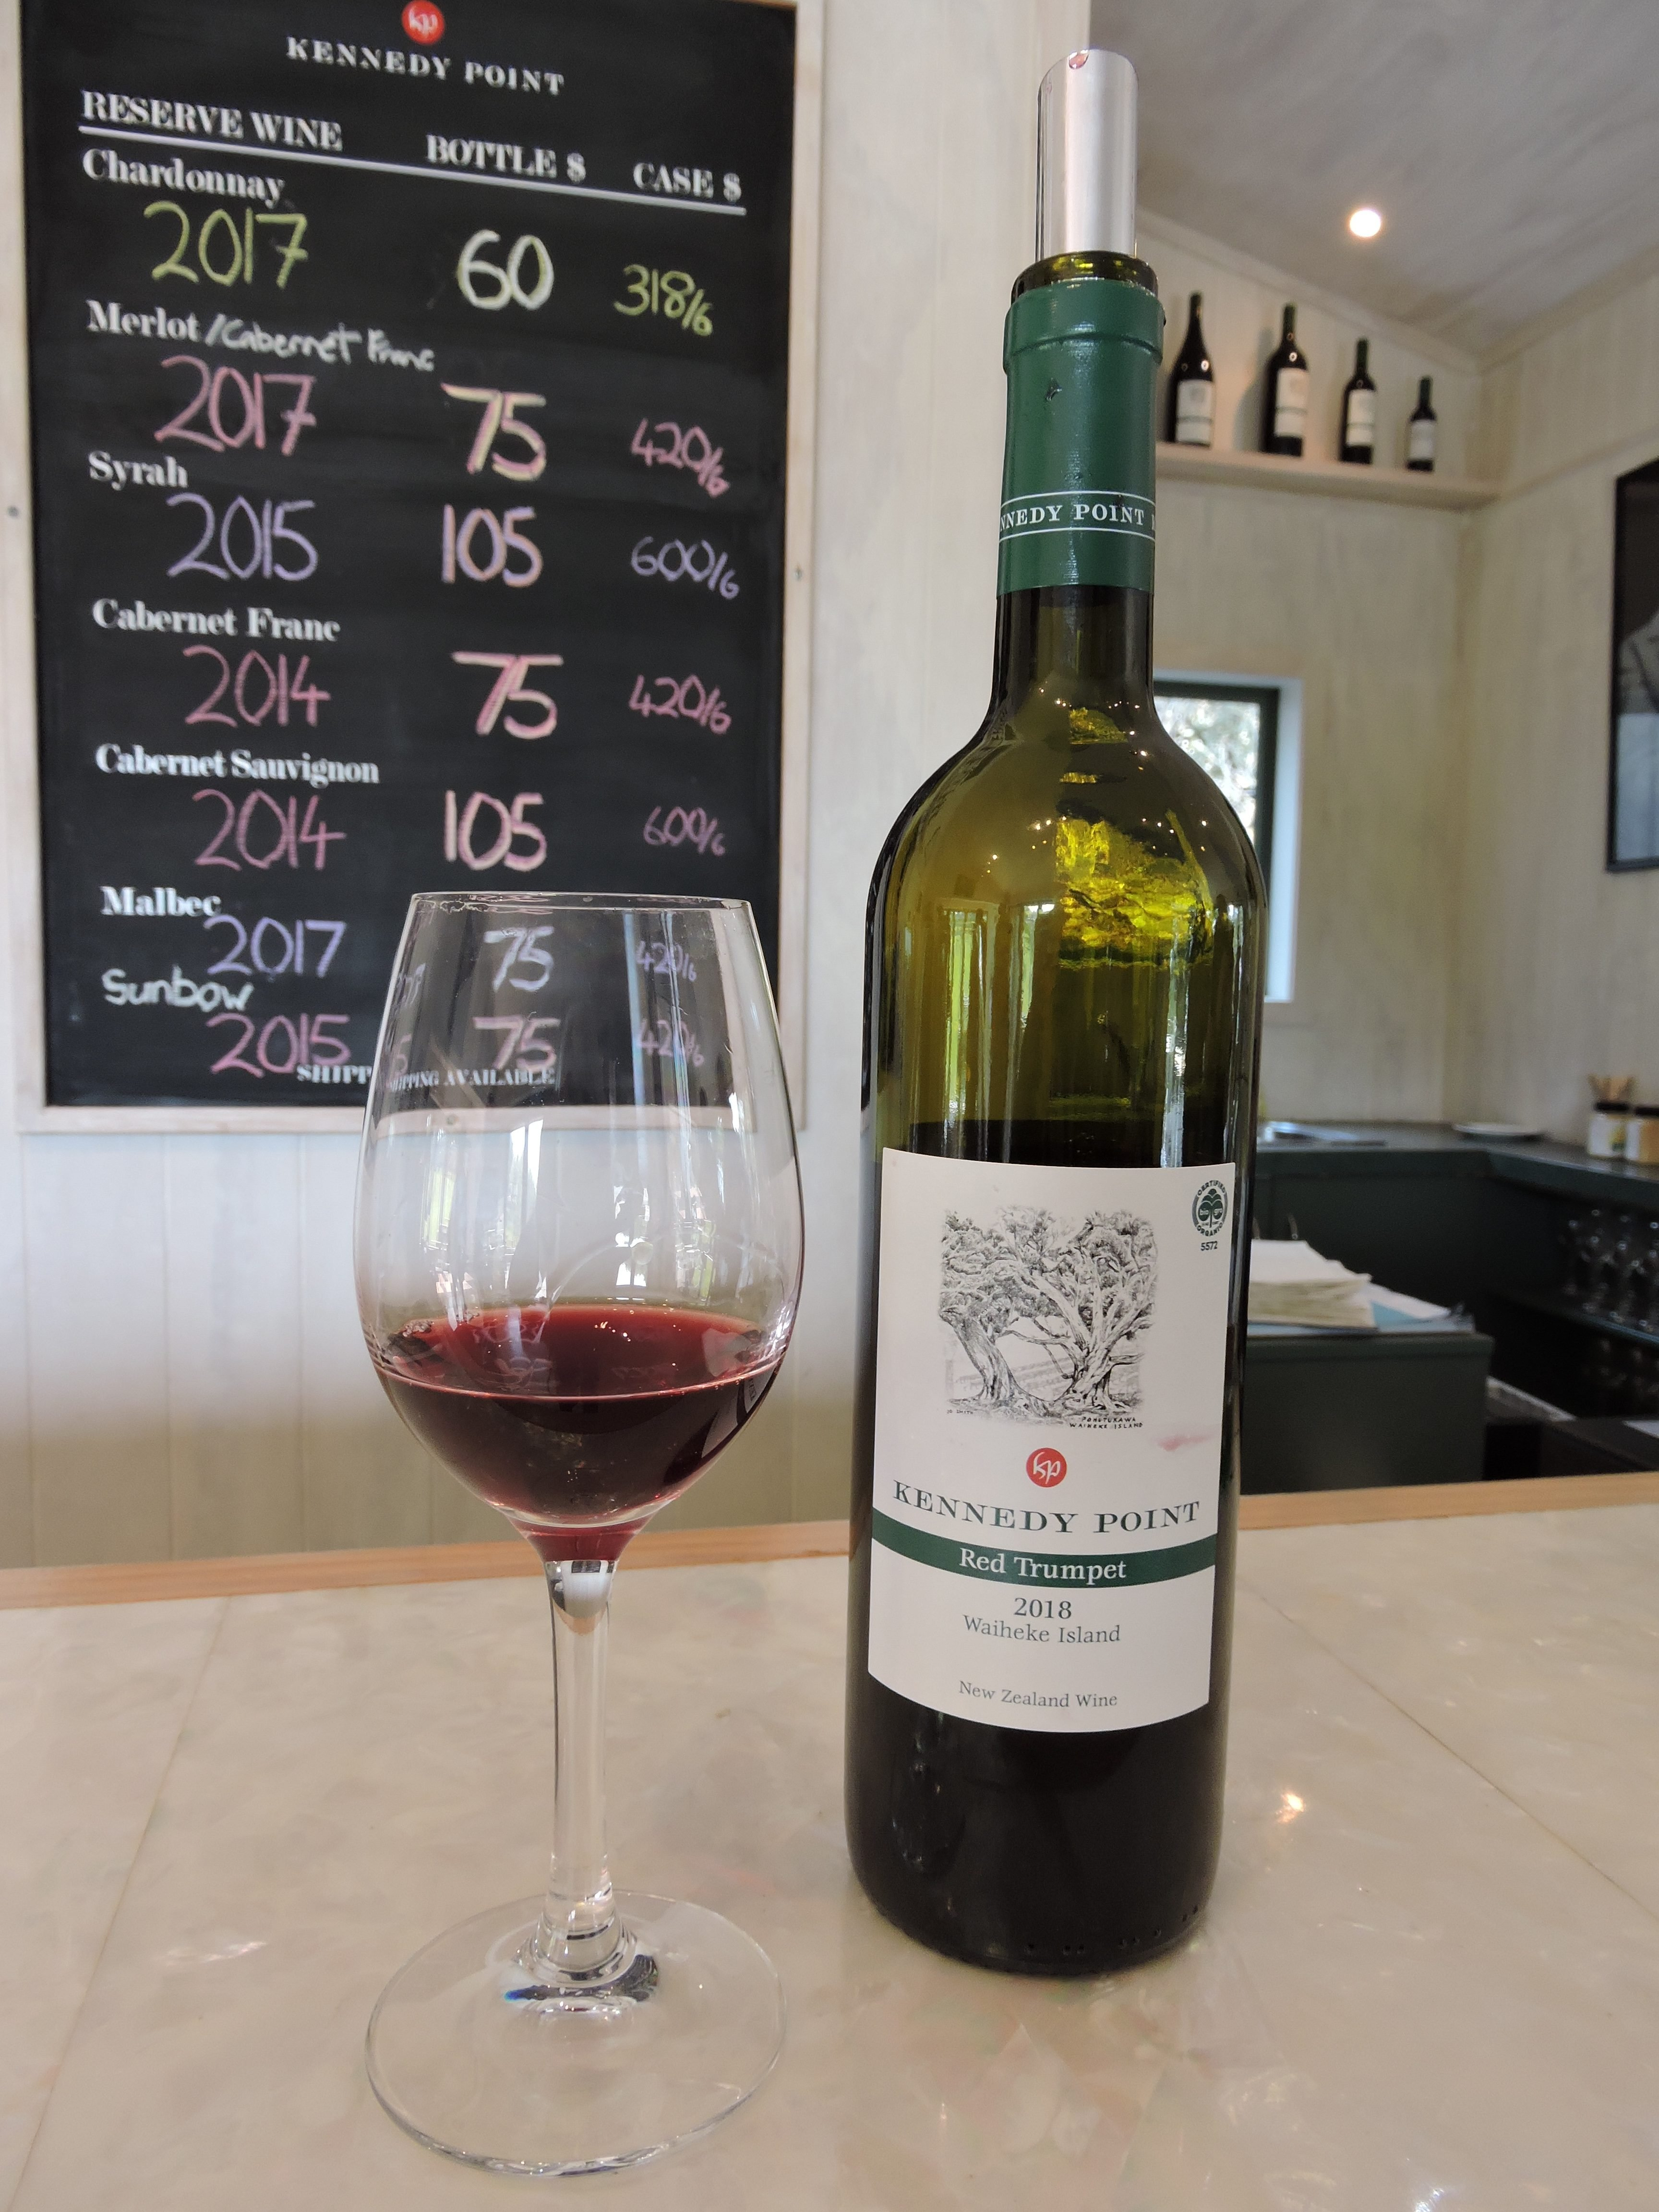 Image of Kennedy Point Red Trumpet wine